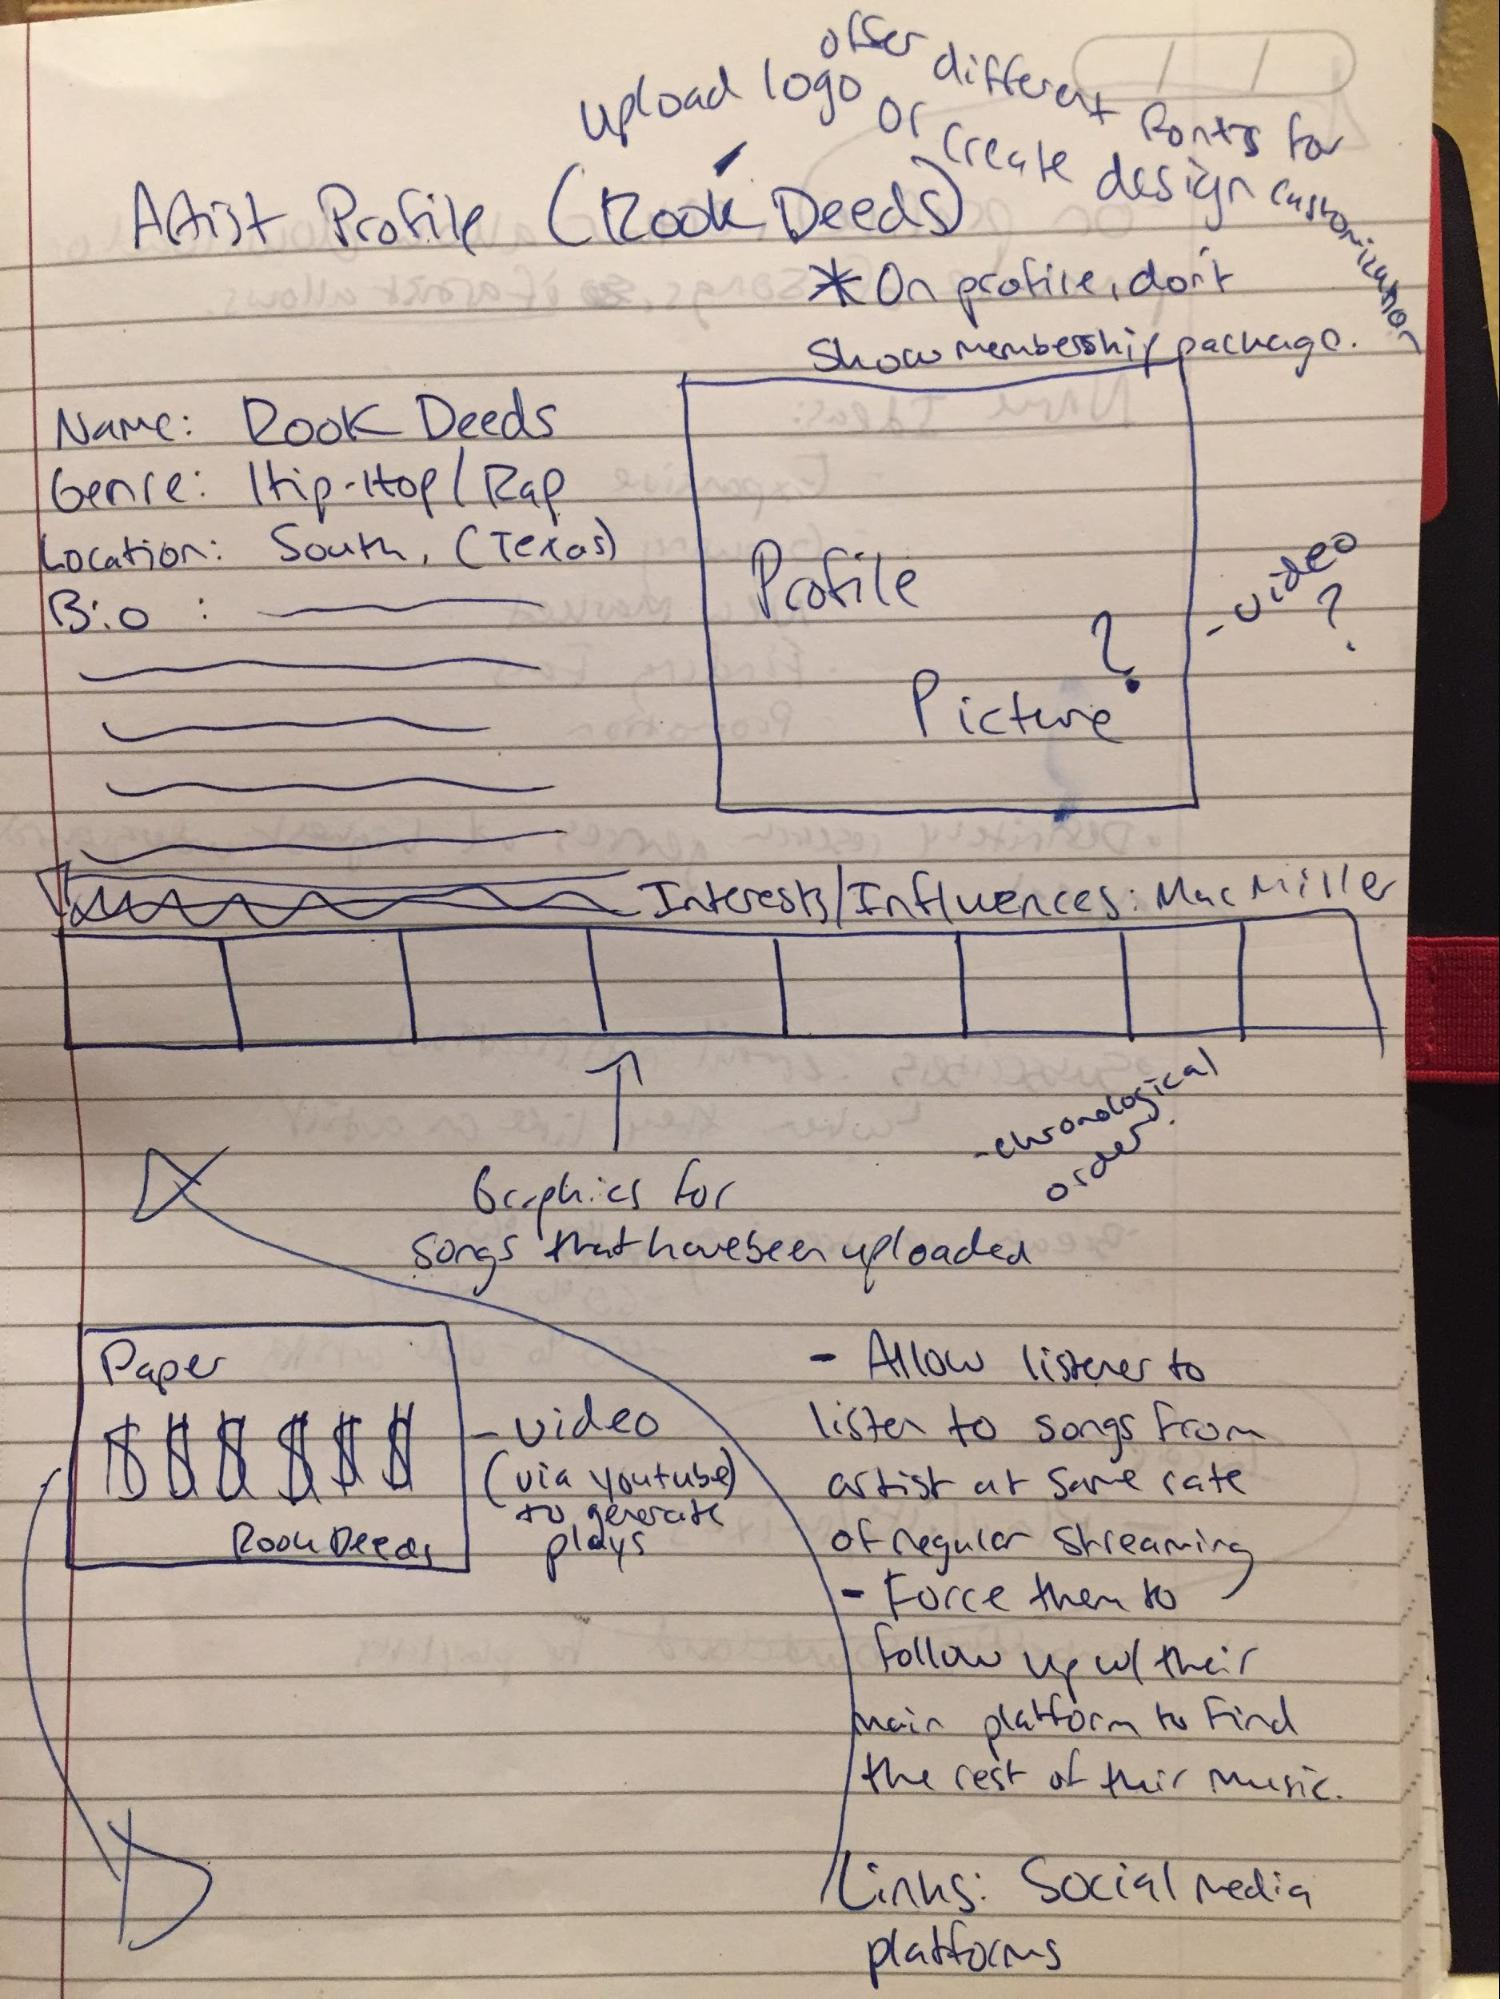 "This is a photo of an early concept sketch for the Artist Profile page on TownWave. Scribbled on paper, it shows the layout of various items such as: artist name, genre, info and bio (top-left), profile picture (top-right), graphics citing interests/influences (middle), links to social media (middle, below interests/influences), and video (bottom-left). Sketch also looks at potential features considered for users like: ""Allow listener to listen to songs from artist at same rate of regular streaming"" and ""Force them to follow up with their main platform to find the rest of their music."" The sketch also notes that customization in terms of logo design and fonts can be offered."